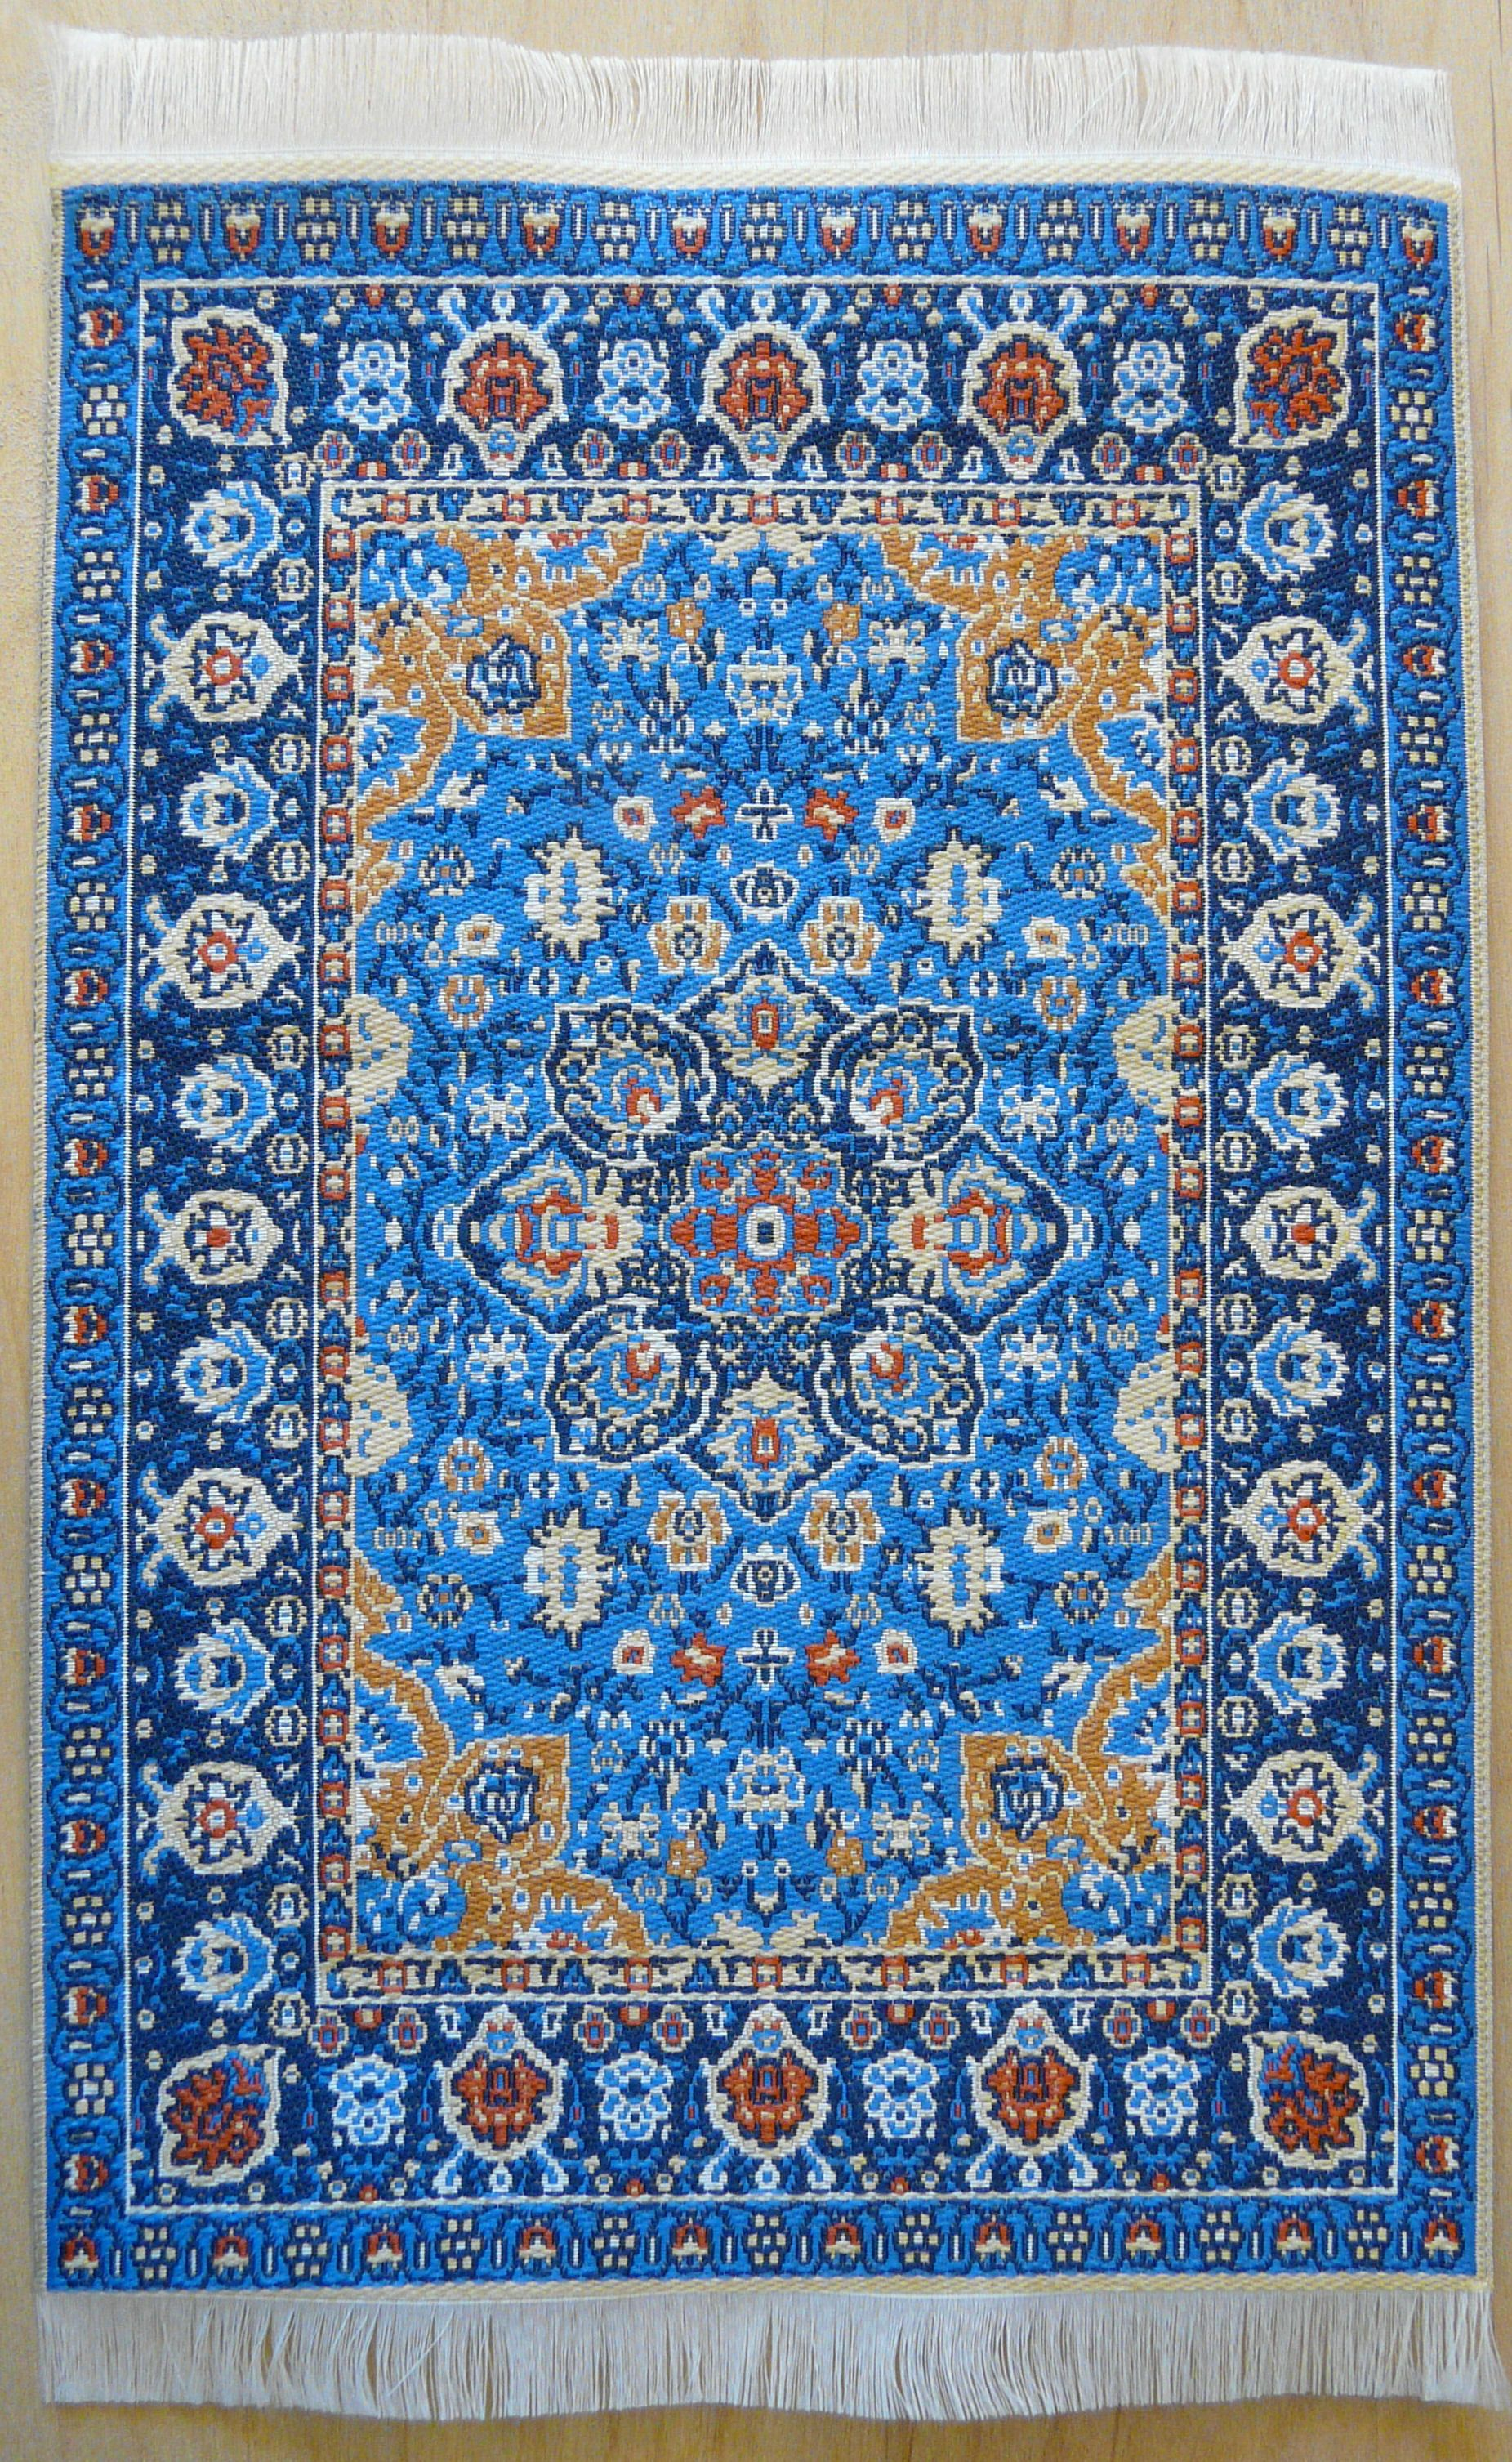 Rugs And Carpets Blue Turkish Rug W Persian Influence In Design